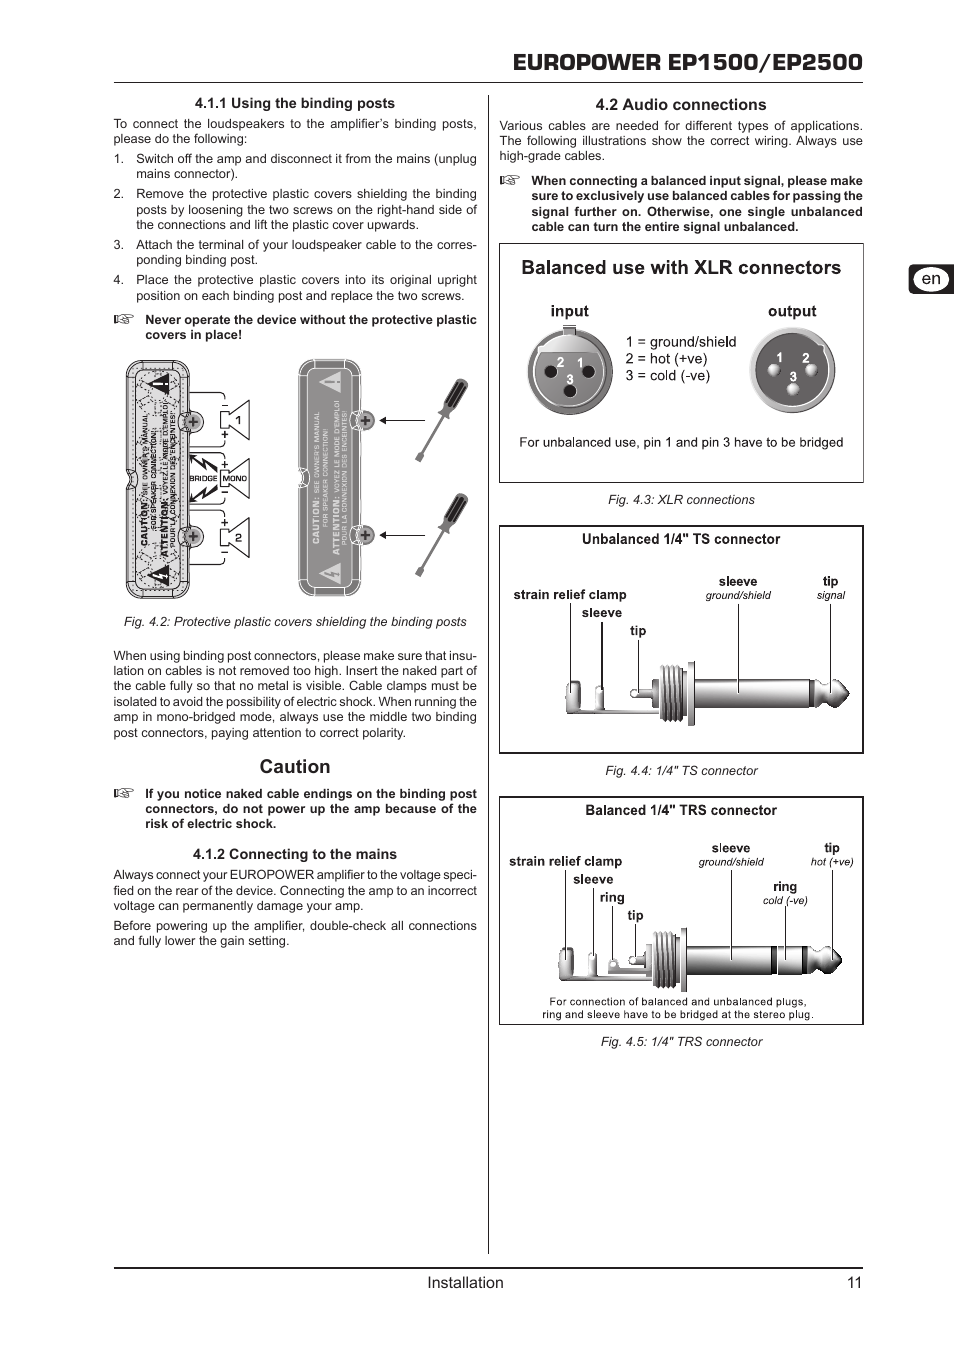 1 Using The Binding Posts 2 Connecting To Mains Audio Trs Connector Wiring Diagram Connections Behringer Europower Ep2500 User Manual Page 11 14